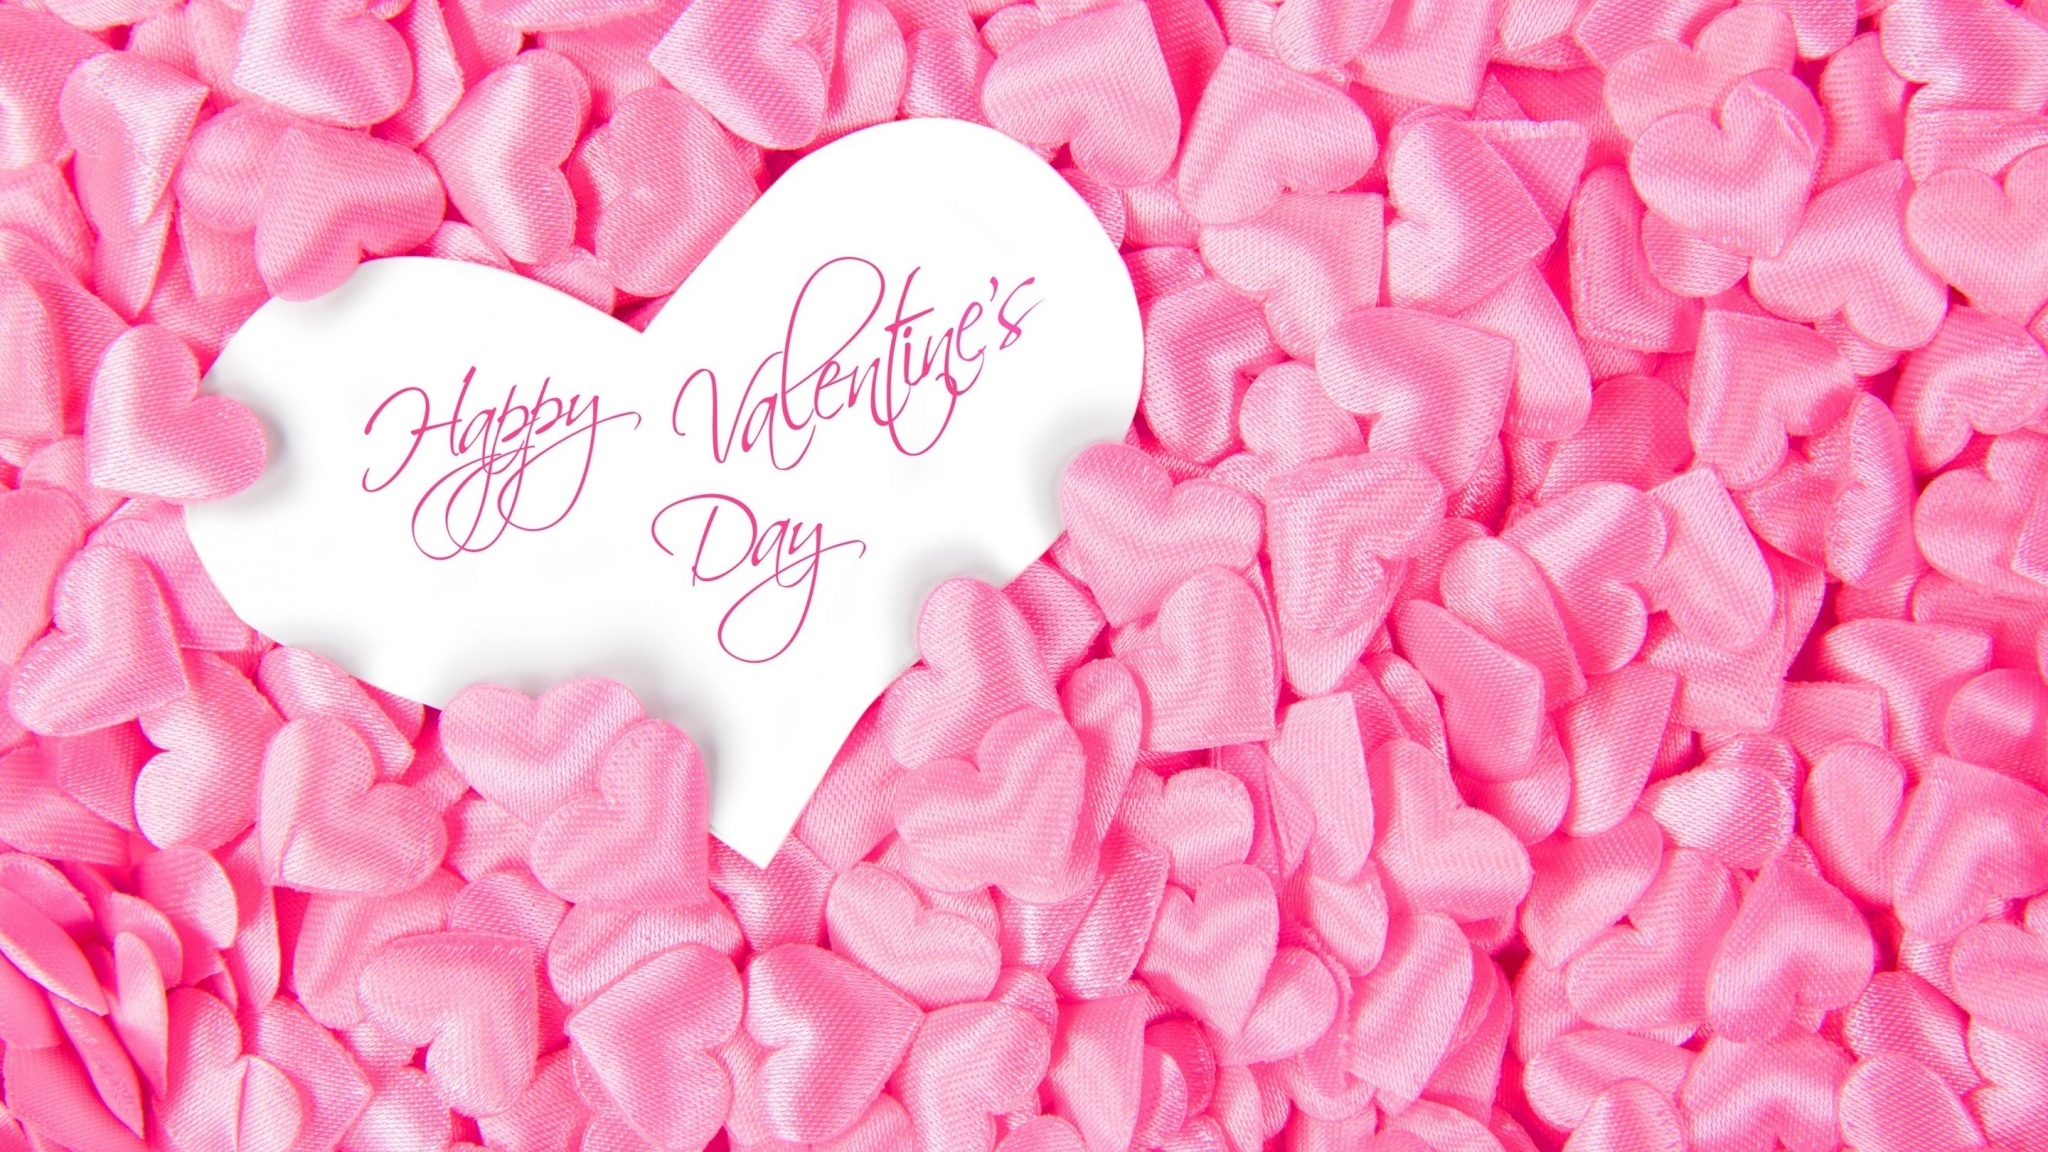 Valentines Day Pink Heart Wallpapers - 2048x1152 - 971693